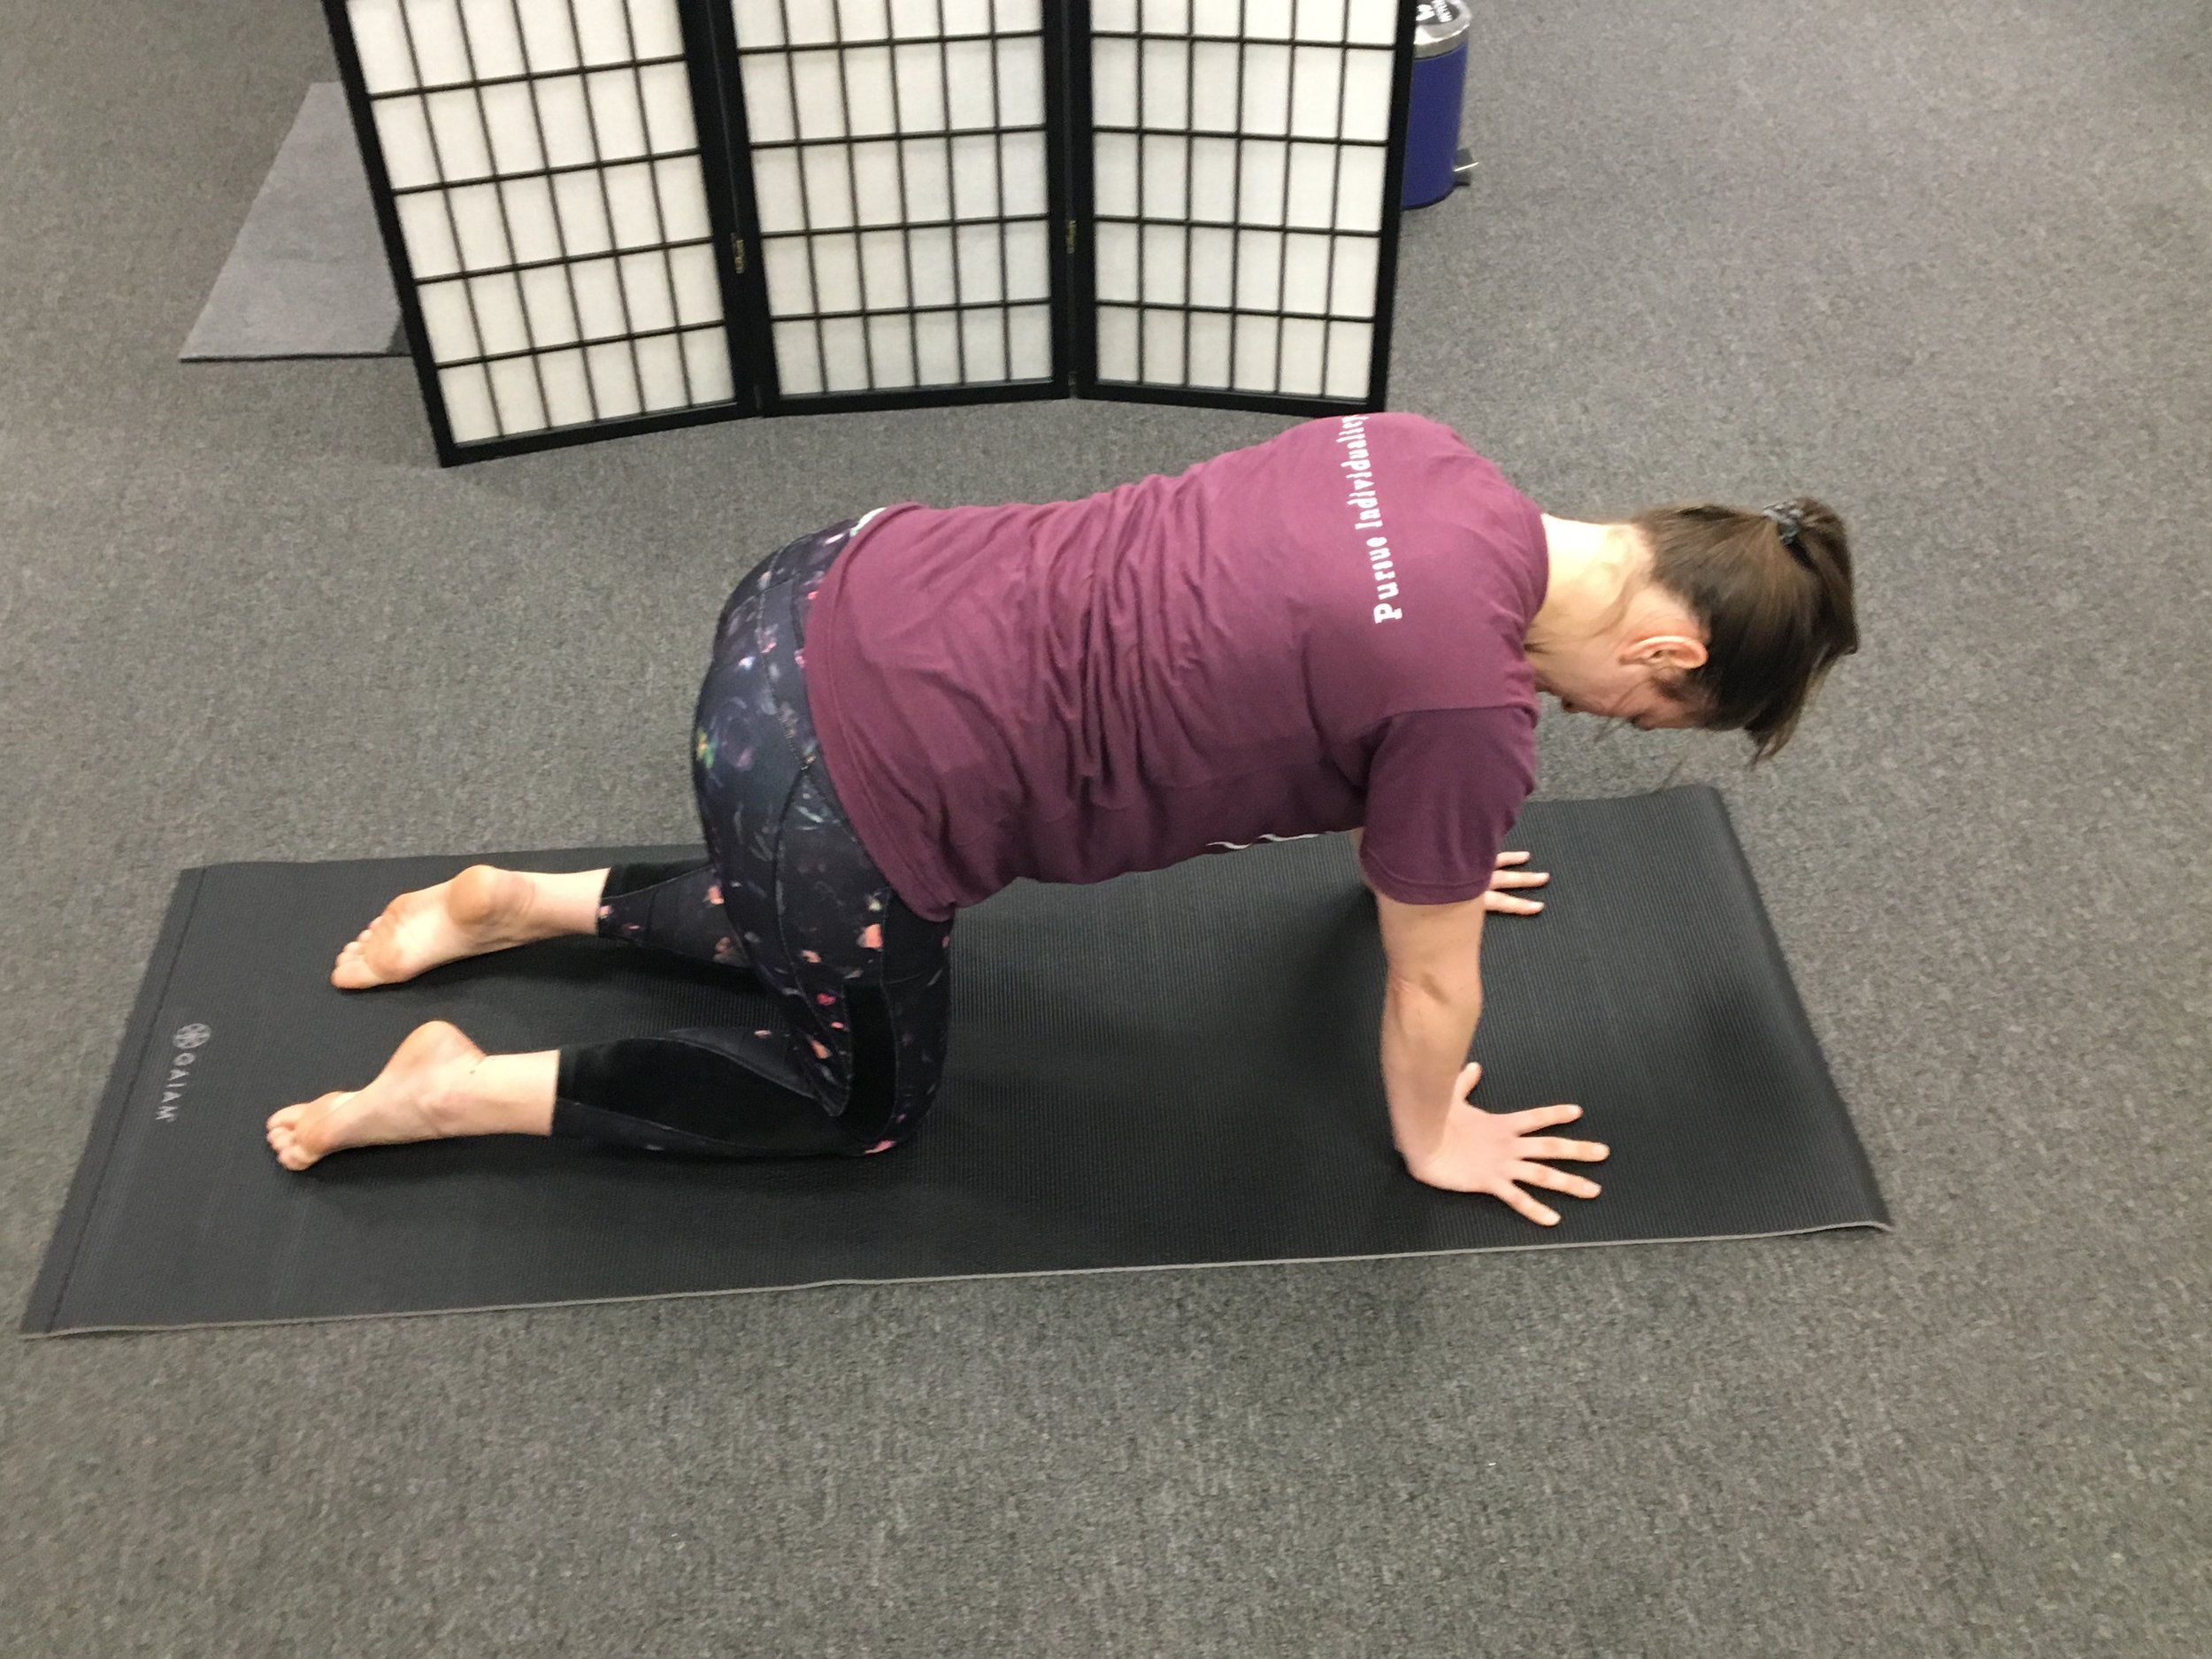 1. - Start in table top position.Hips over knees. Shoulders over hands.